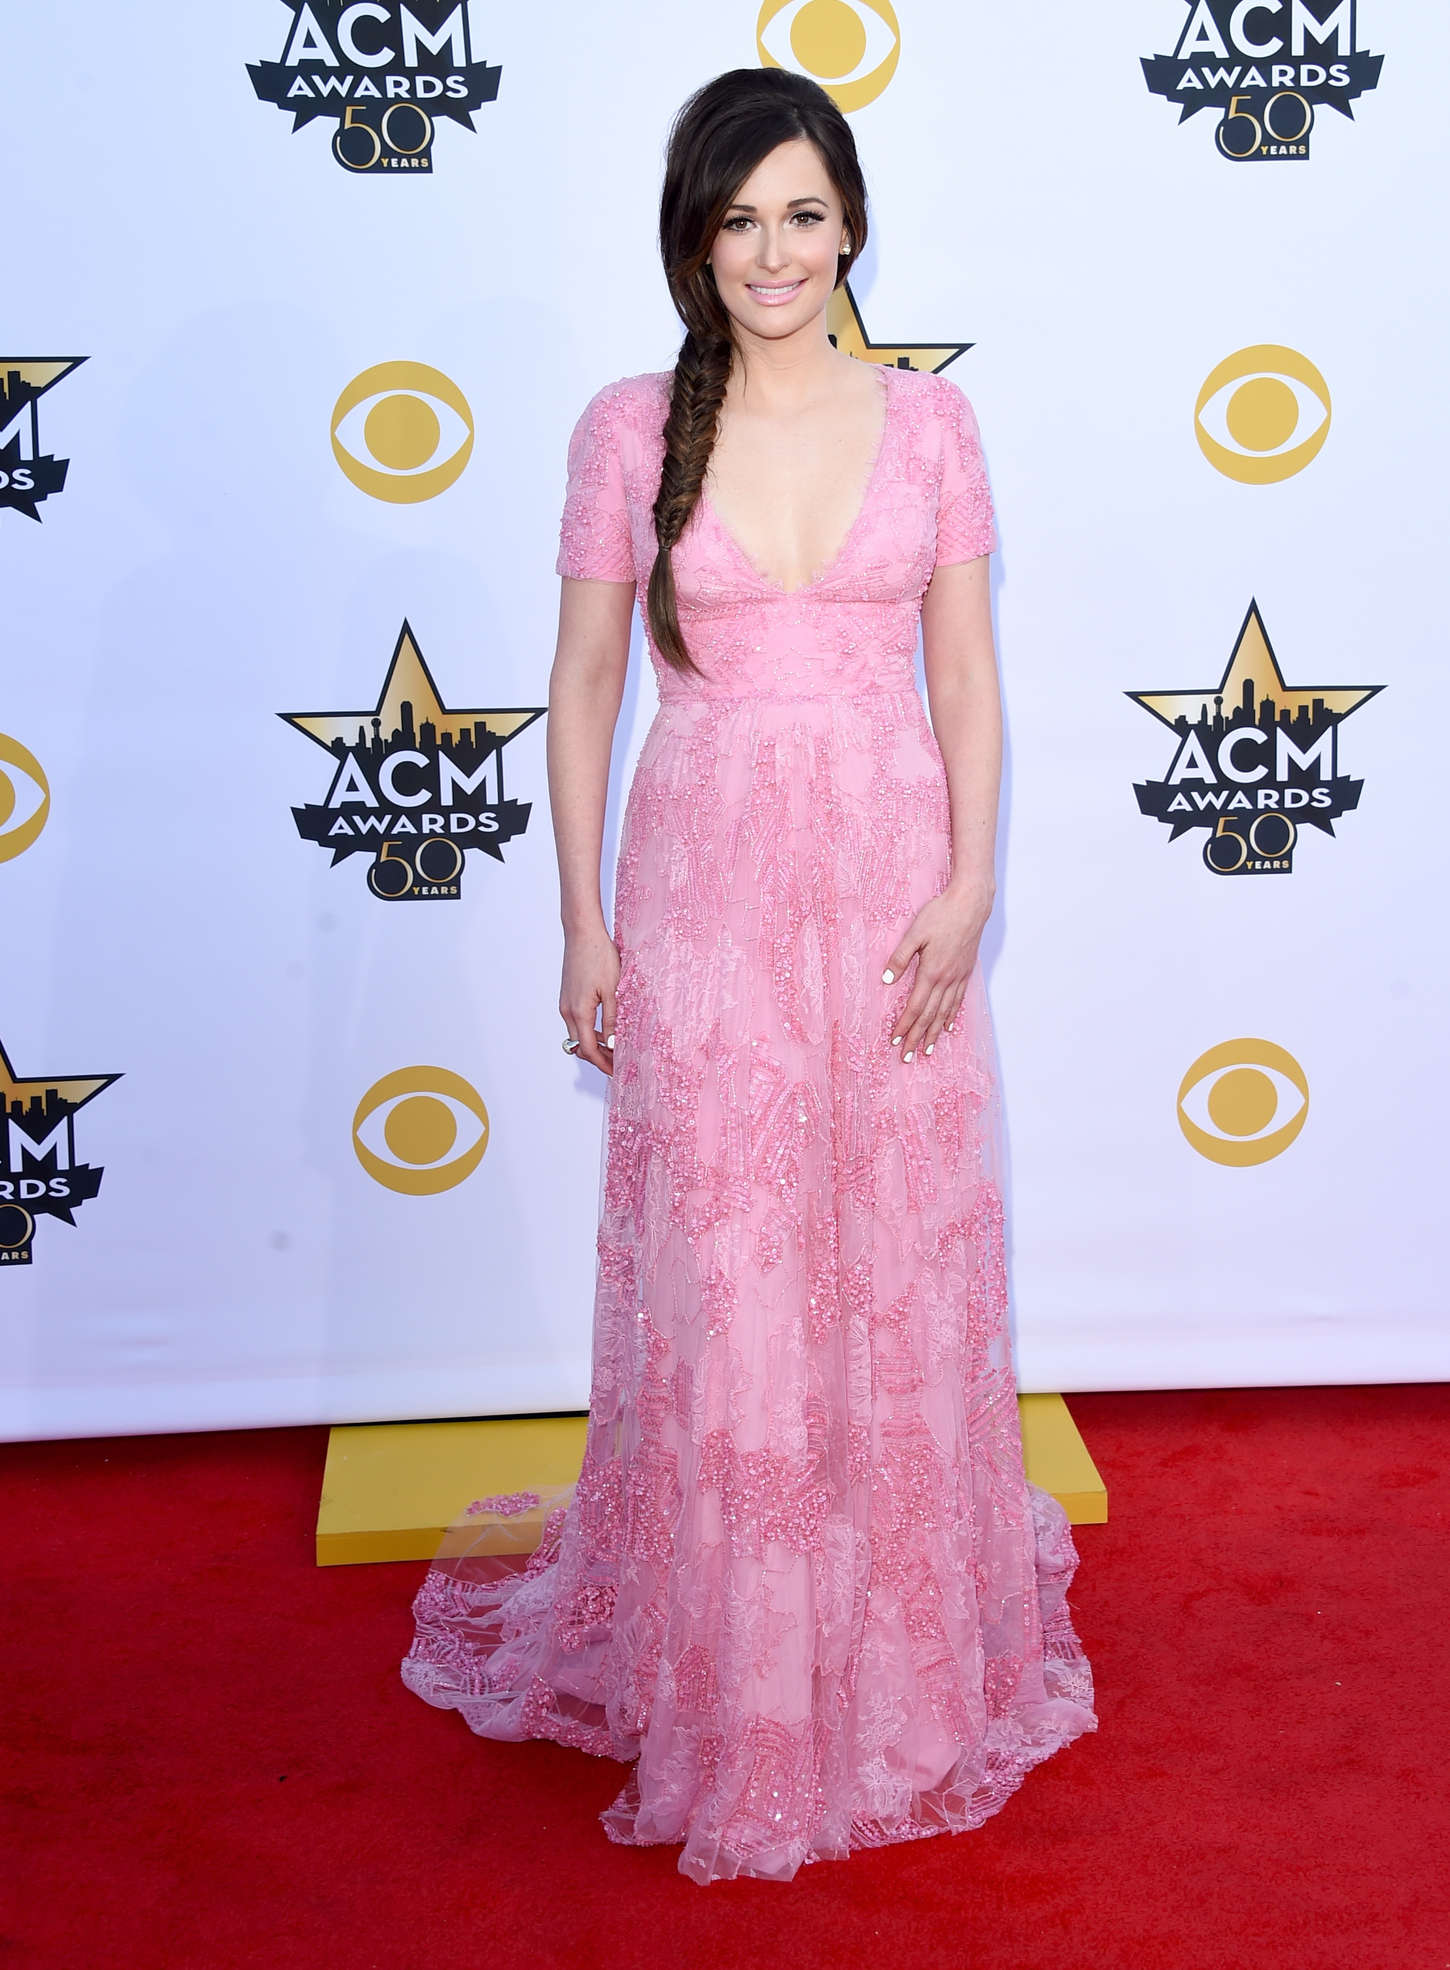 Kacey Musgraves Academy Of Country Music Awards in Arlington